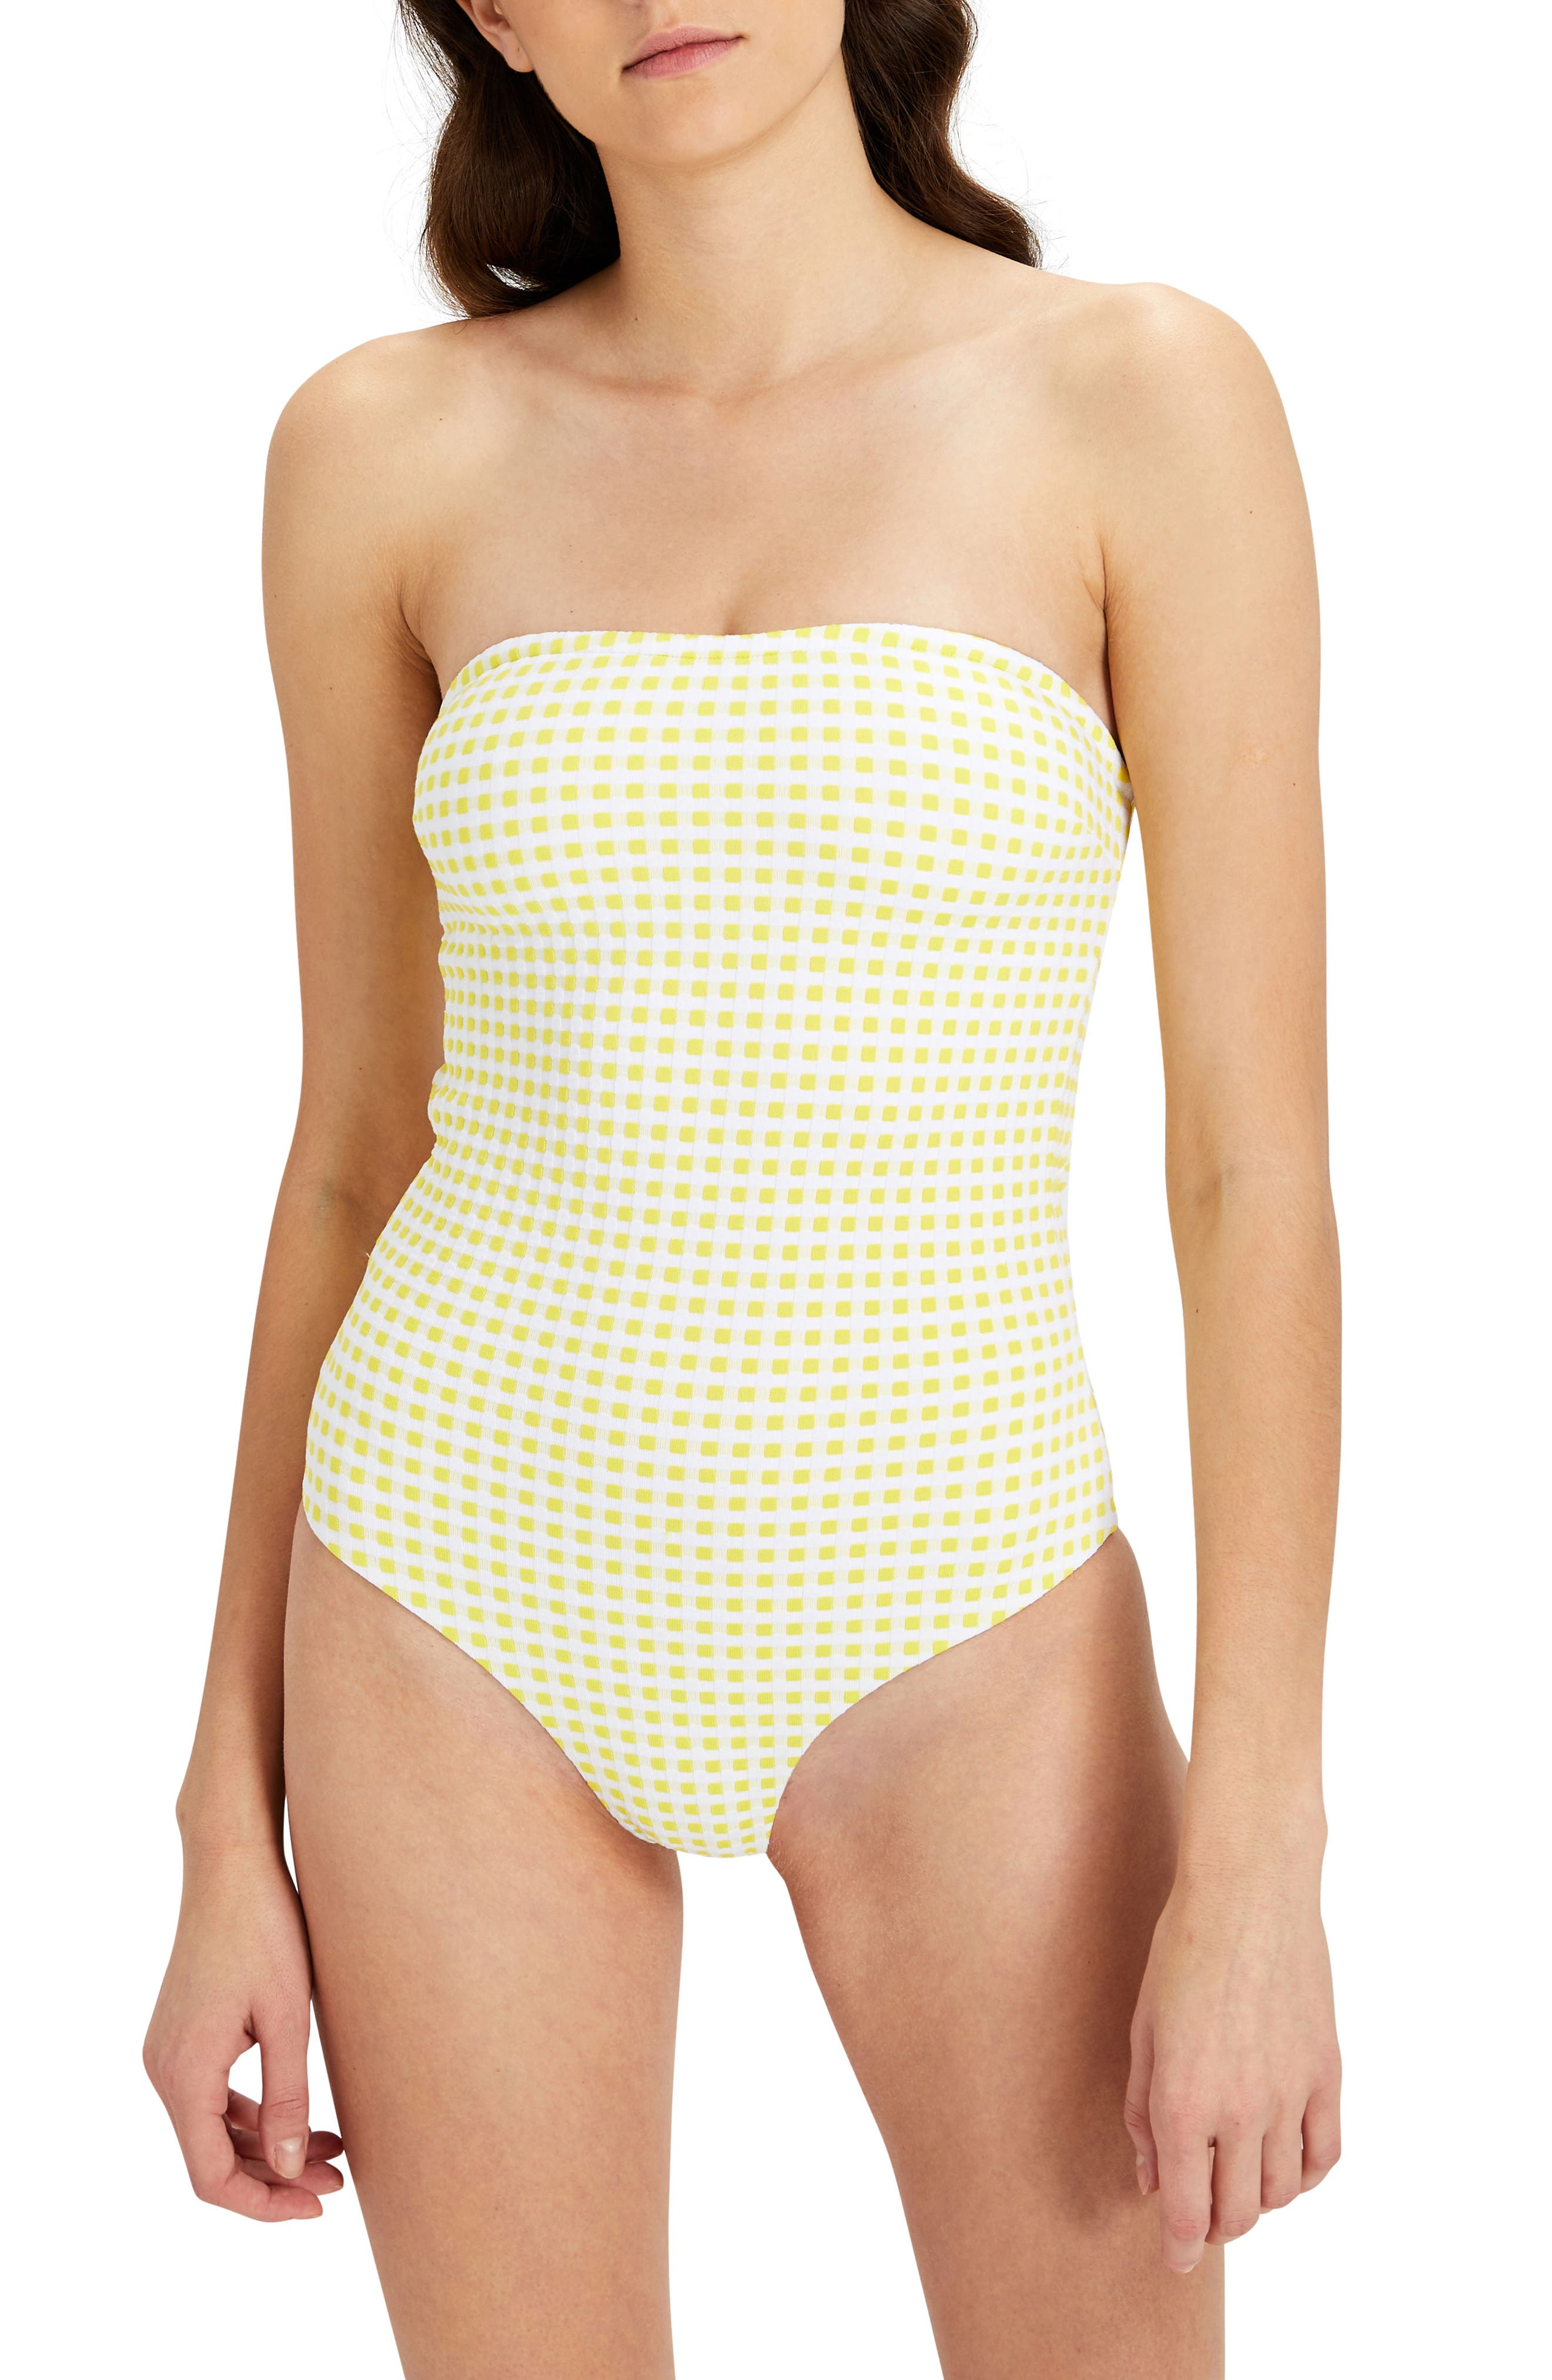 Alternate Image 1 Selected - Onia Estelle Convertible One-Piece Swimsuit